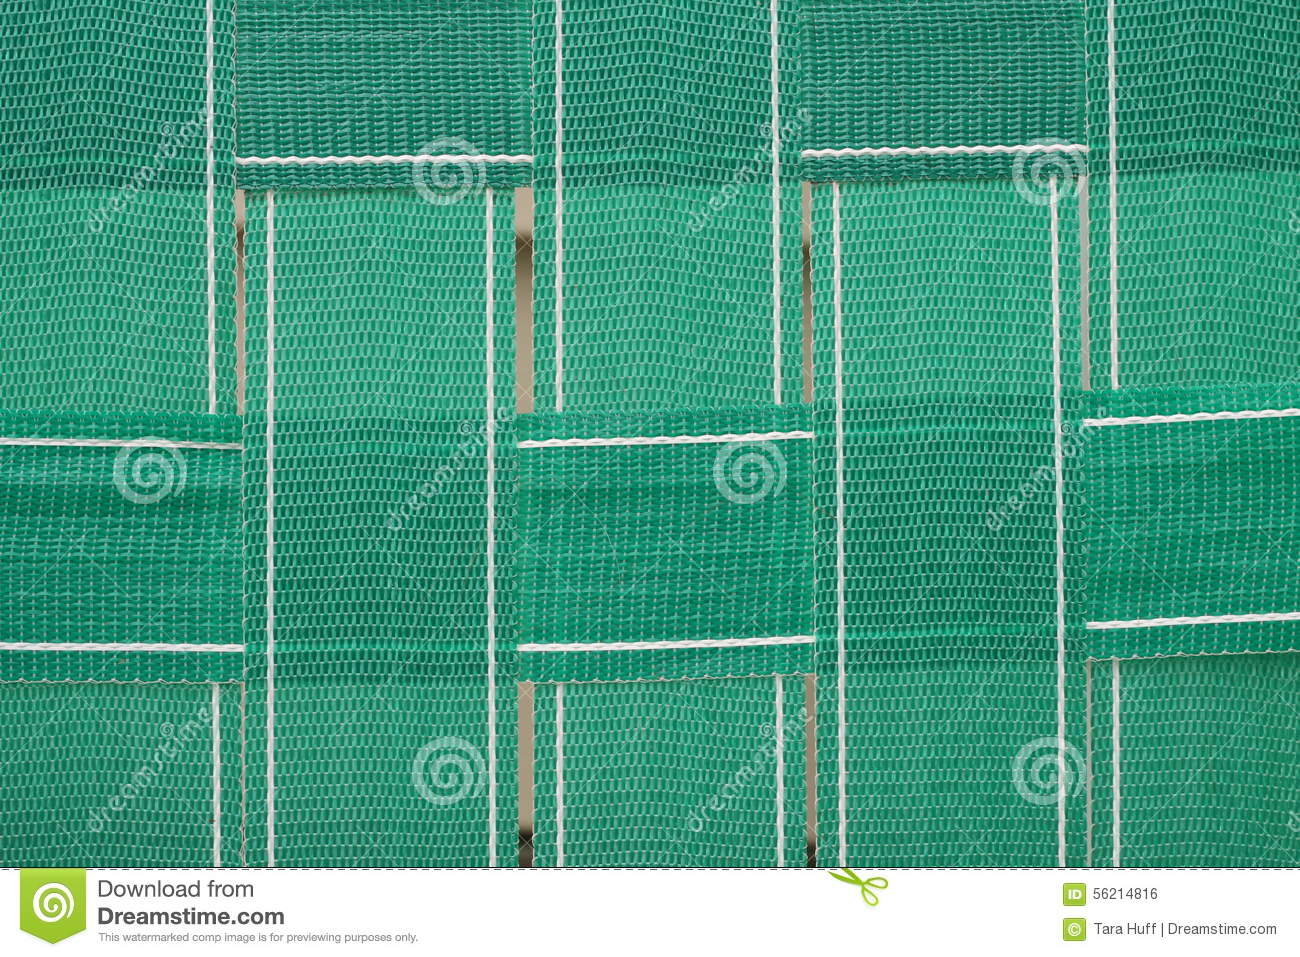 Woven Lawn Chair Green Woven Lawn Chair Webbing Stock Photo Image Of Pattern